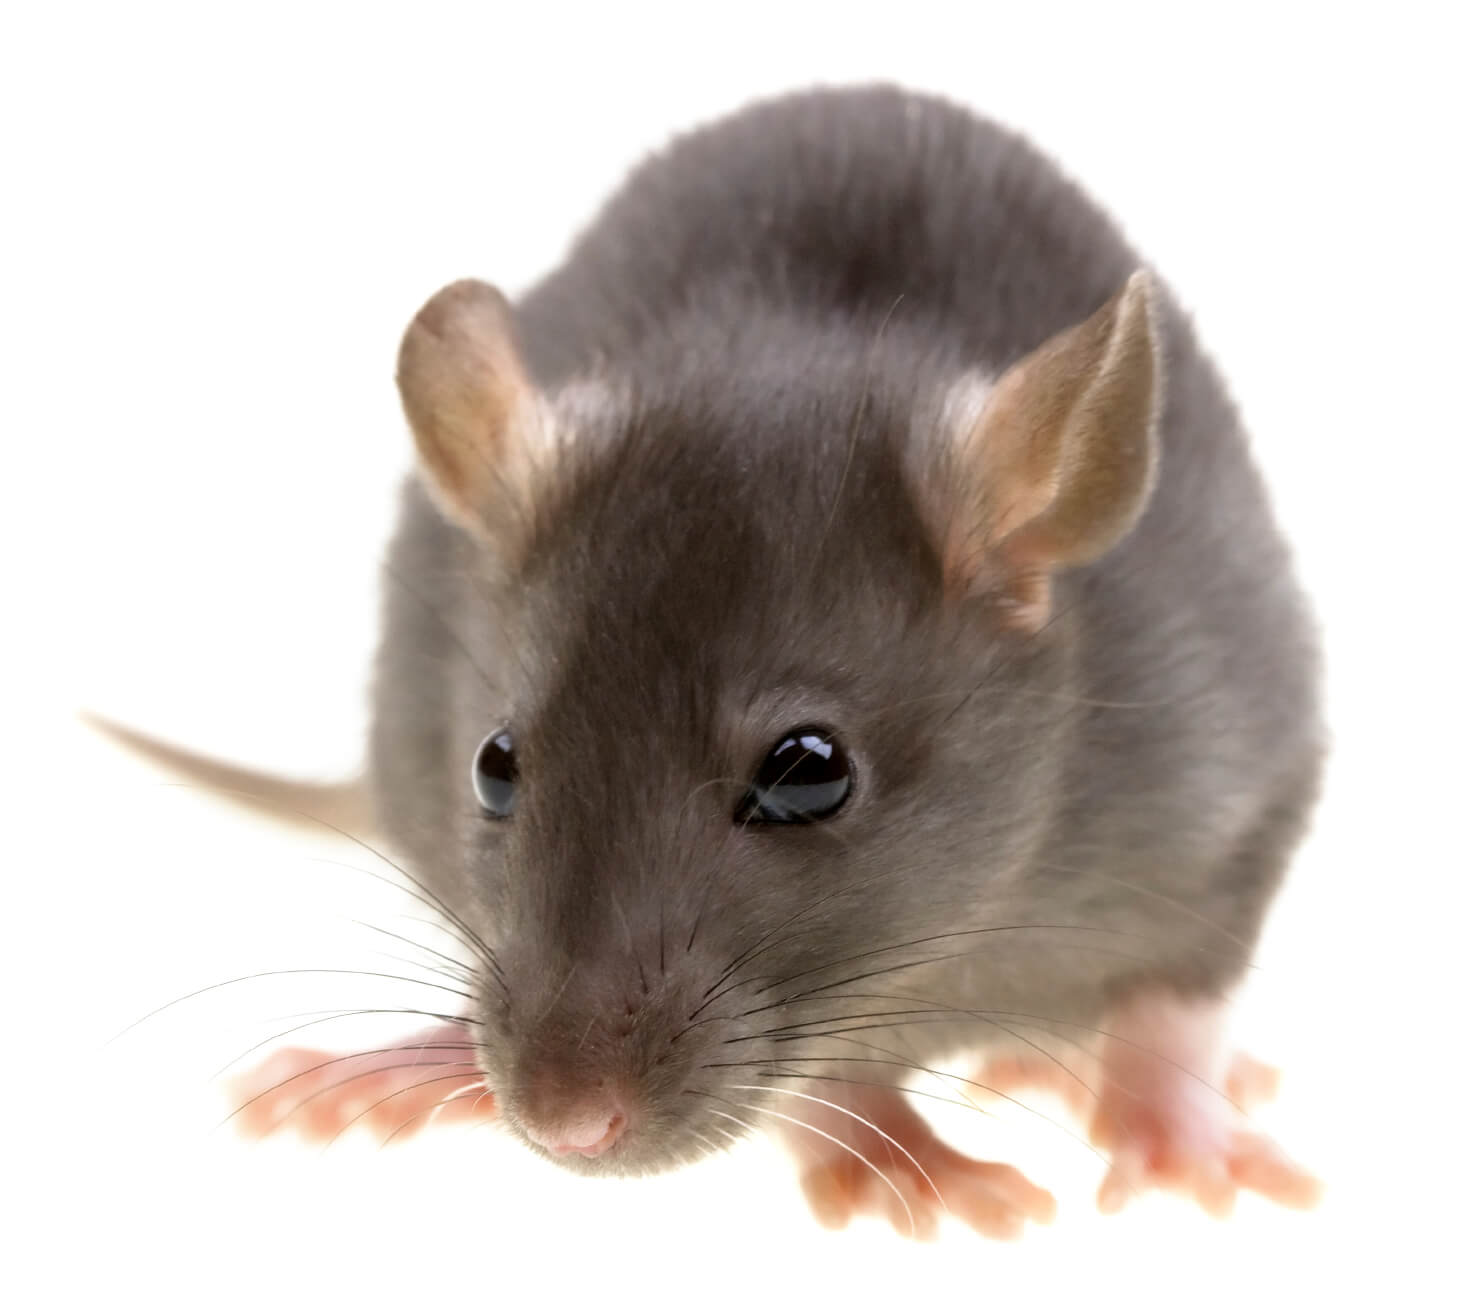 Pestco rat and rodent control services